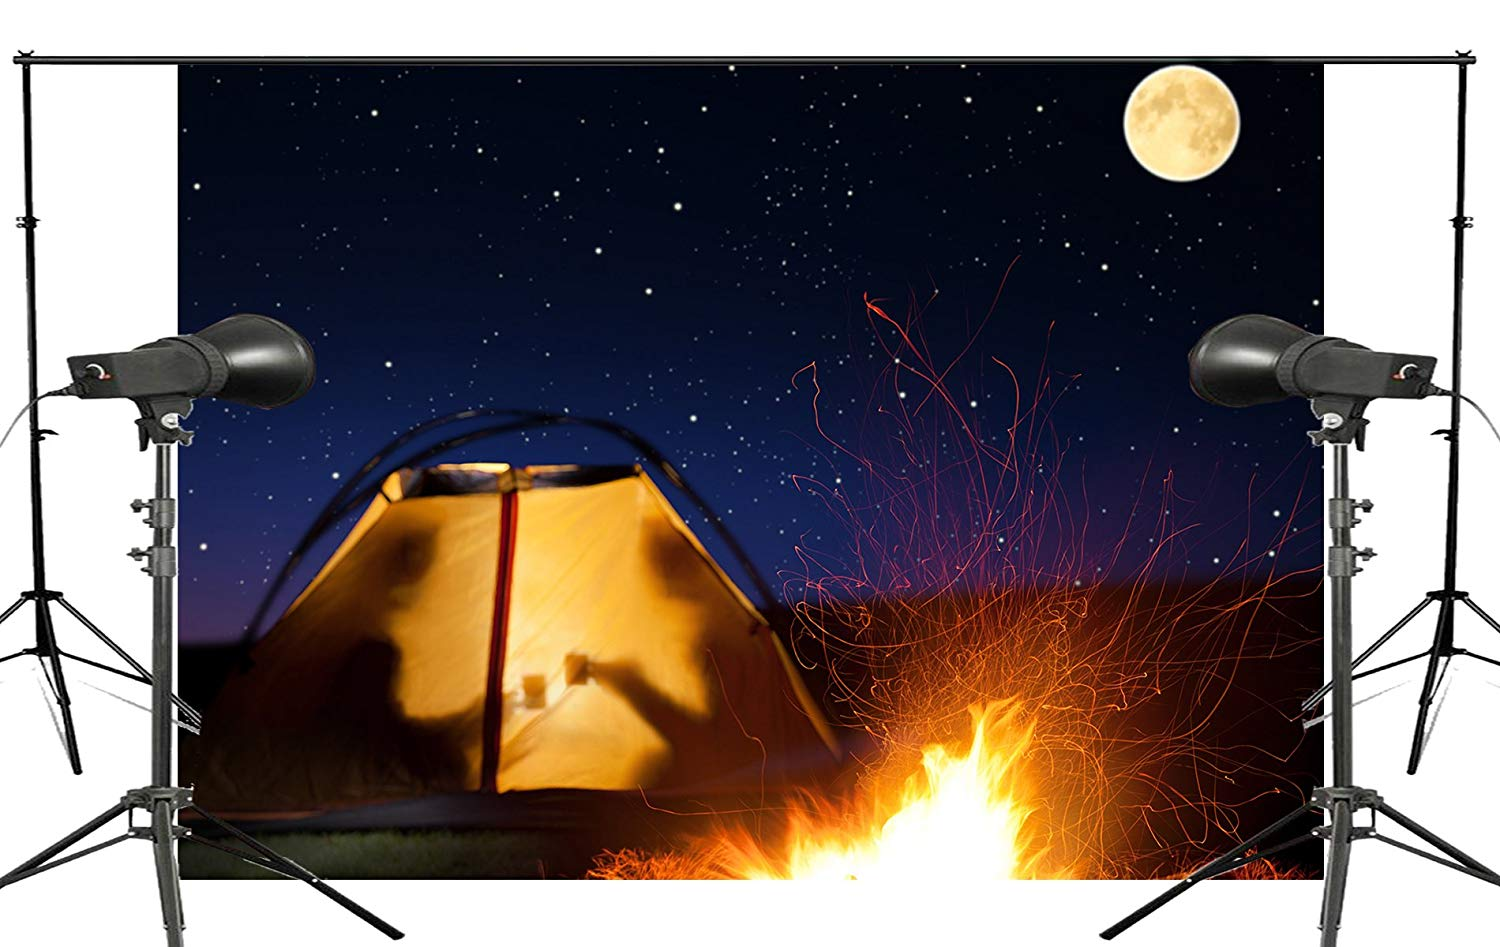 Full Moon Night Fire Tent Background Reunion Scene Photo Studio Backdrop 7x5ft Photography Backdrops Wall-in Photo Studio Accessories from Consumer Electronics